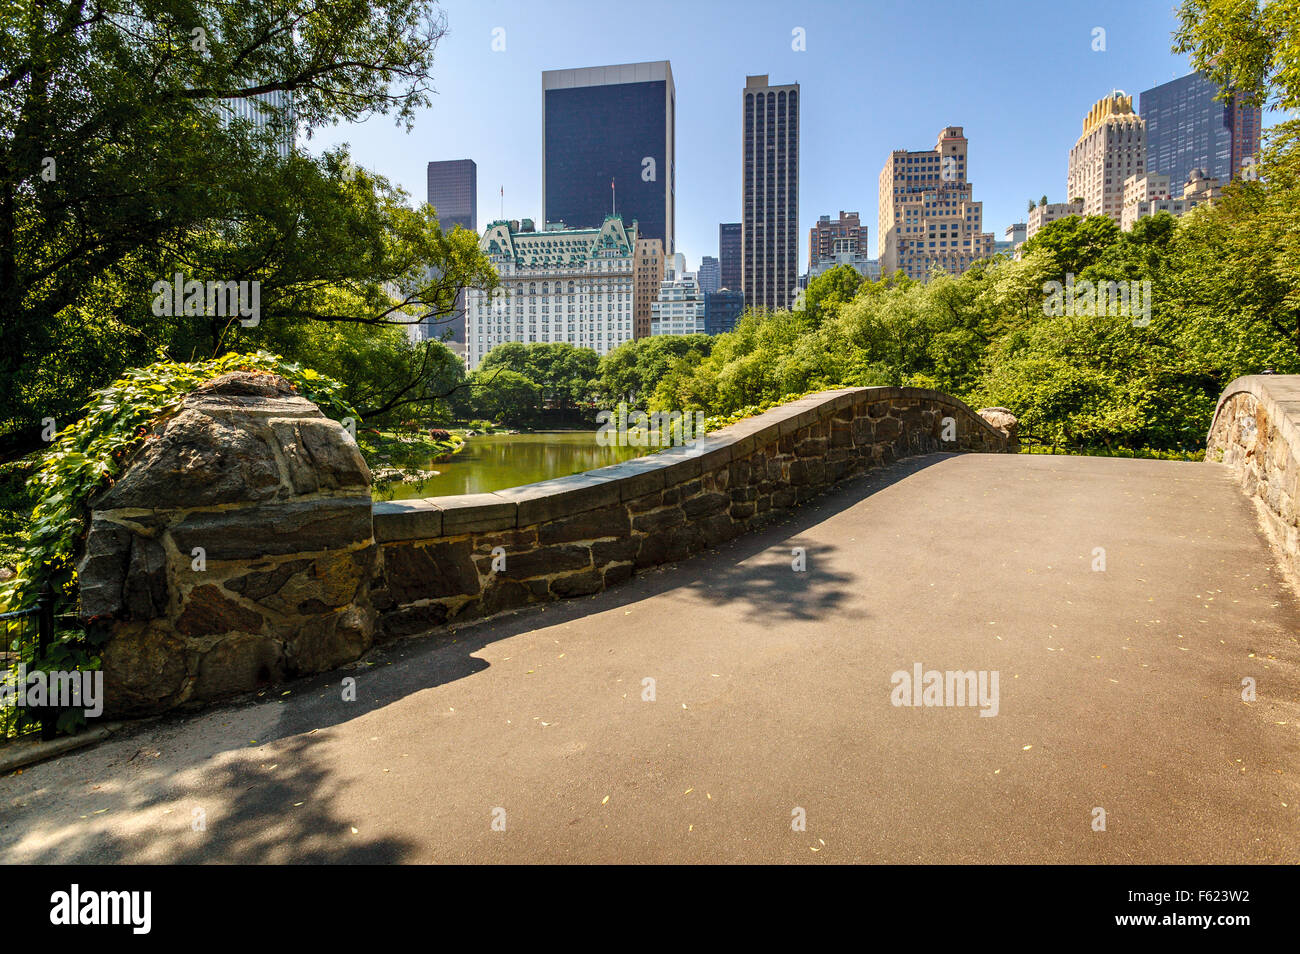 Gapstow Bridge and The Pond on a Spring morning with view of Manhattan skyscrapers,  Central Park, New York City - Stock Image